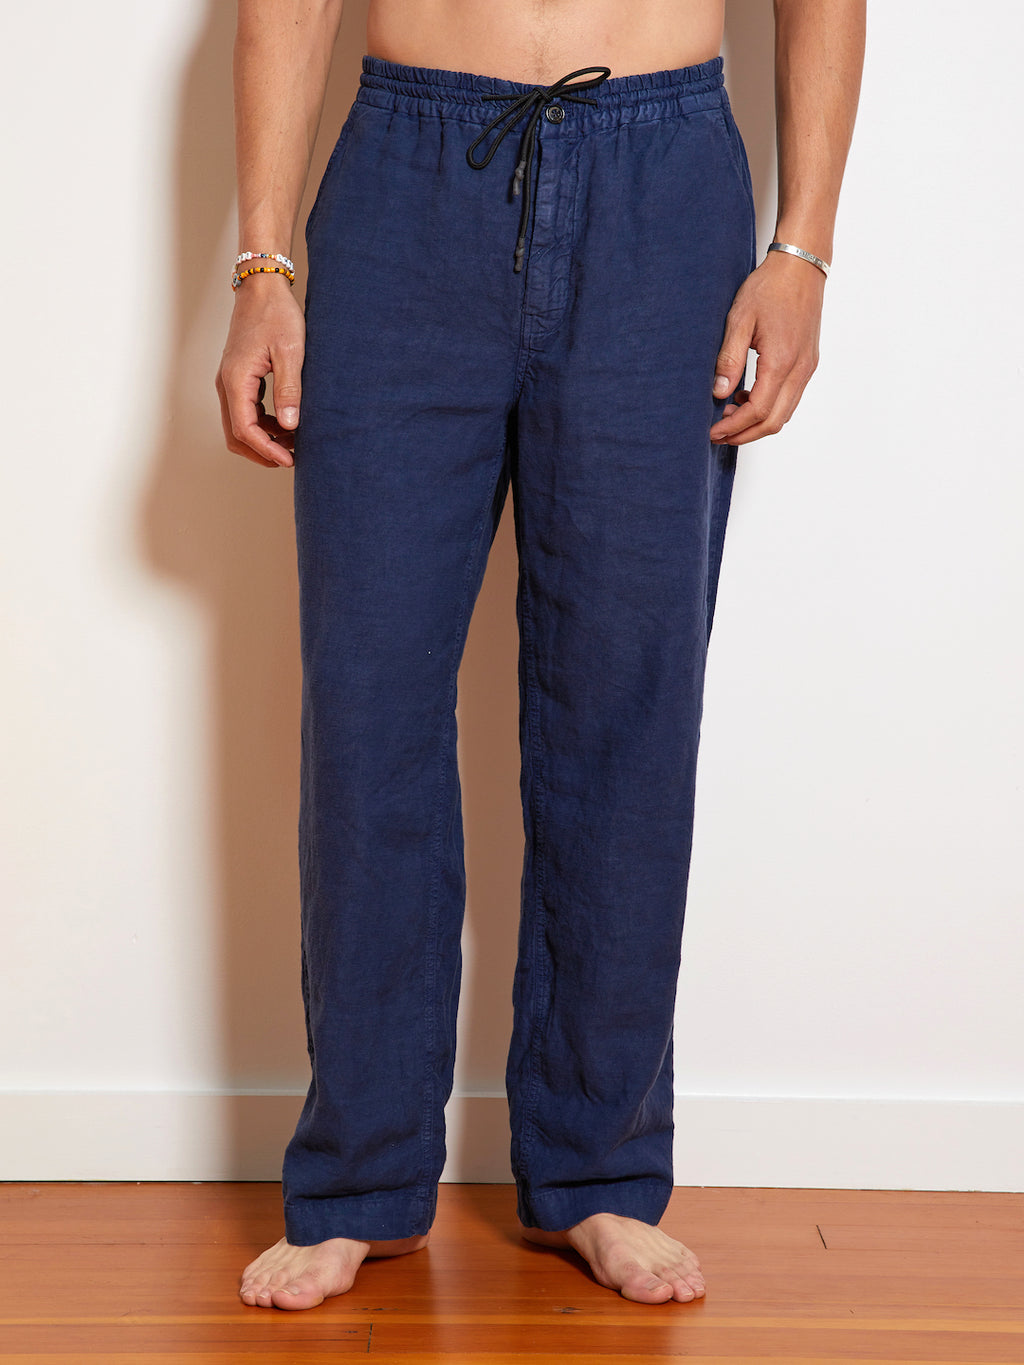 President's Leisure Compact Linen Dyed Trouser, Blue Moon